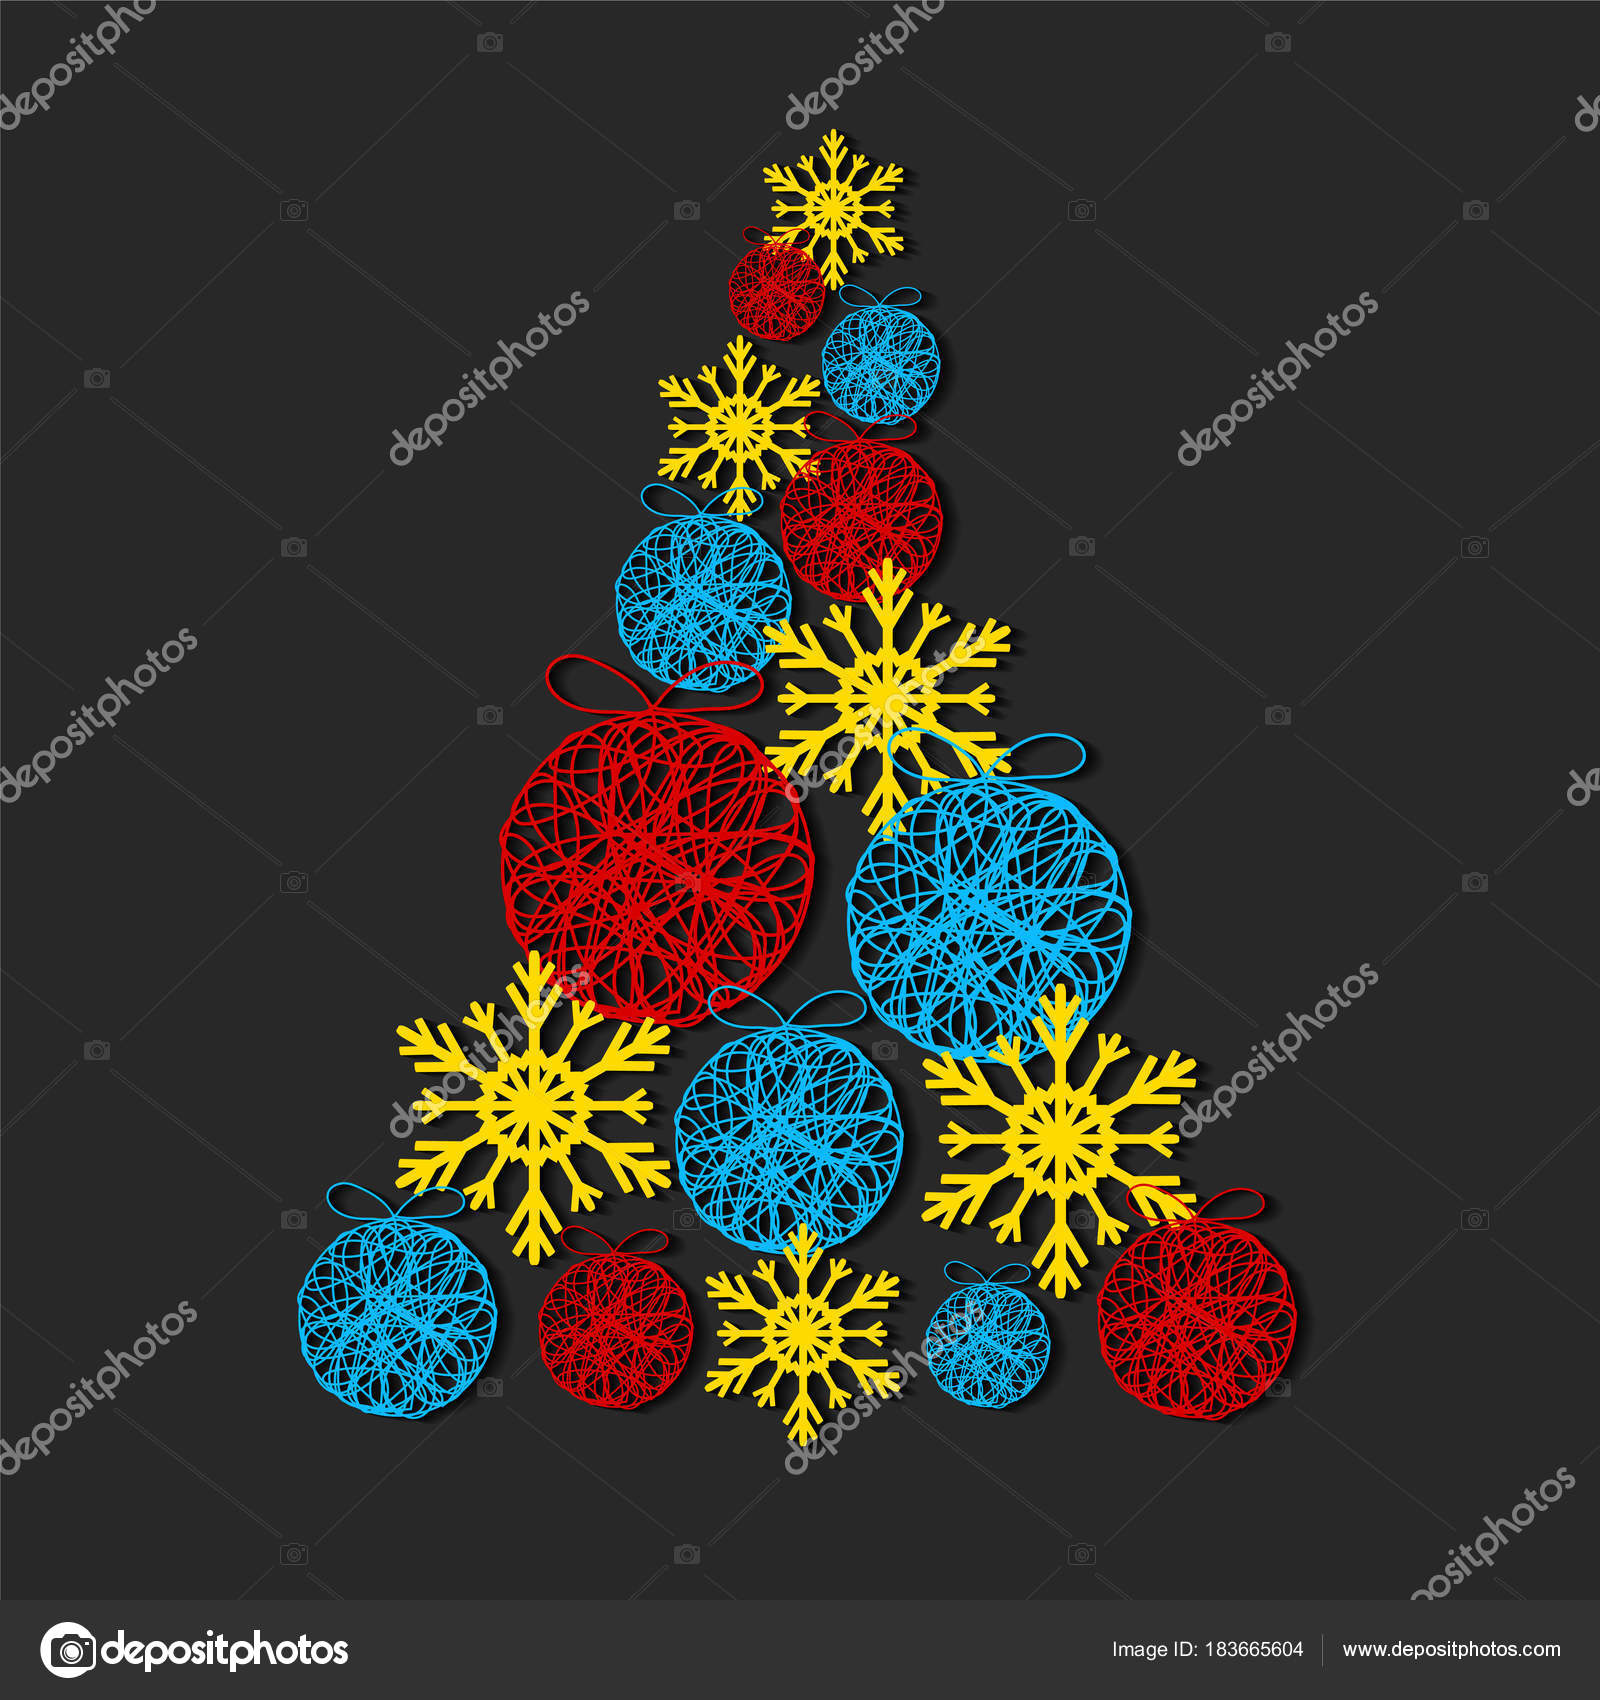 Christmas Tree Made From Snowflakes And Decorative Balls On Dark Background Stock Vector Illustration By VovanIvan